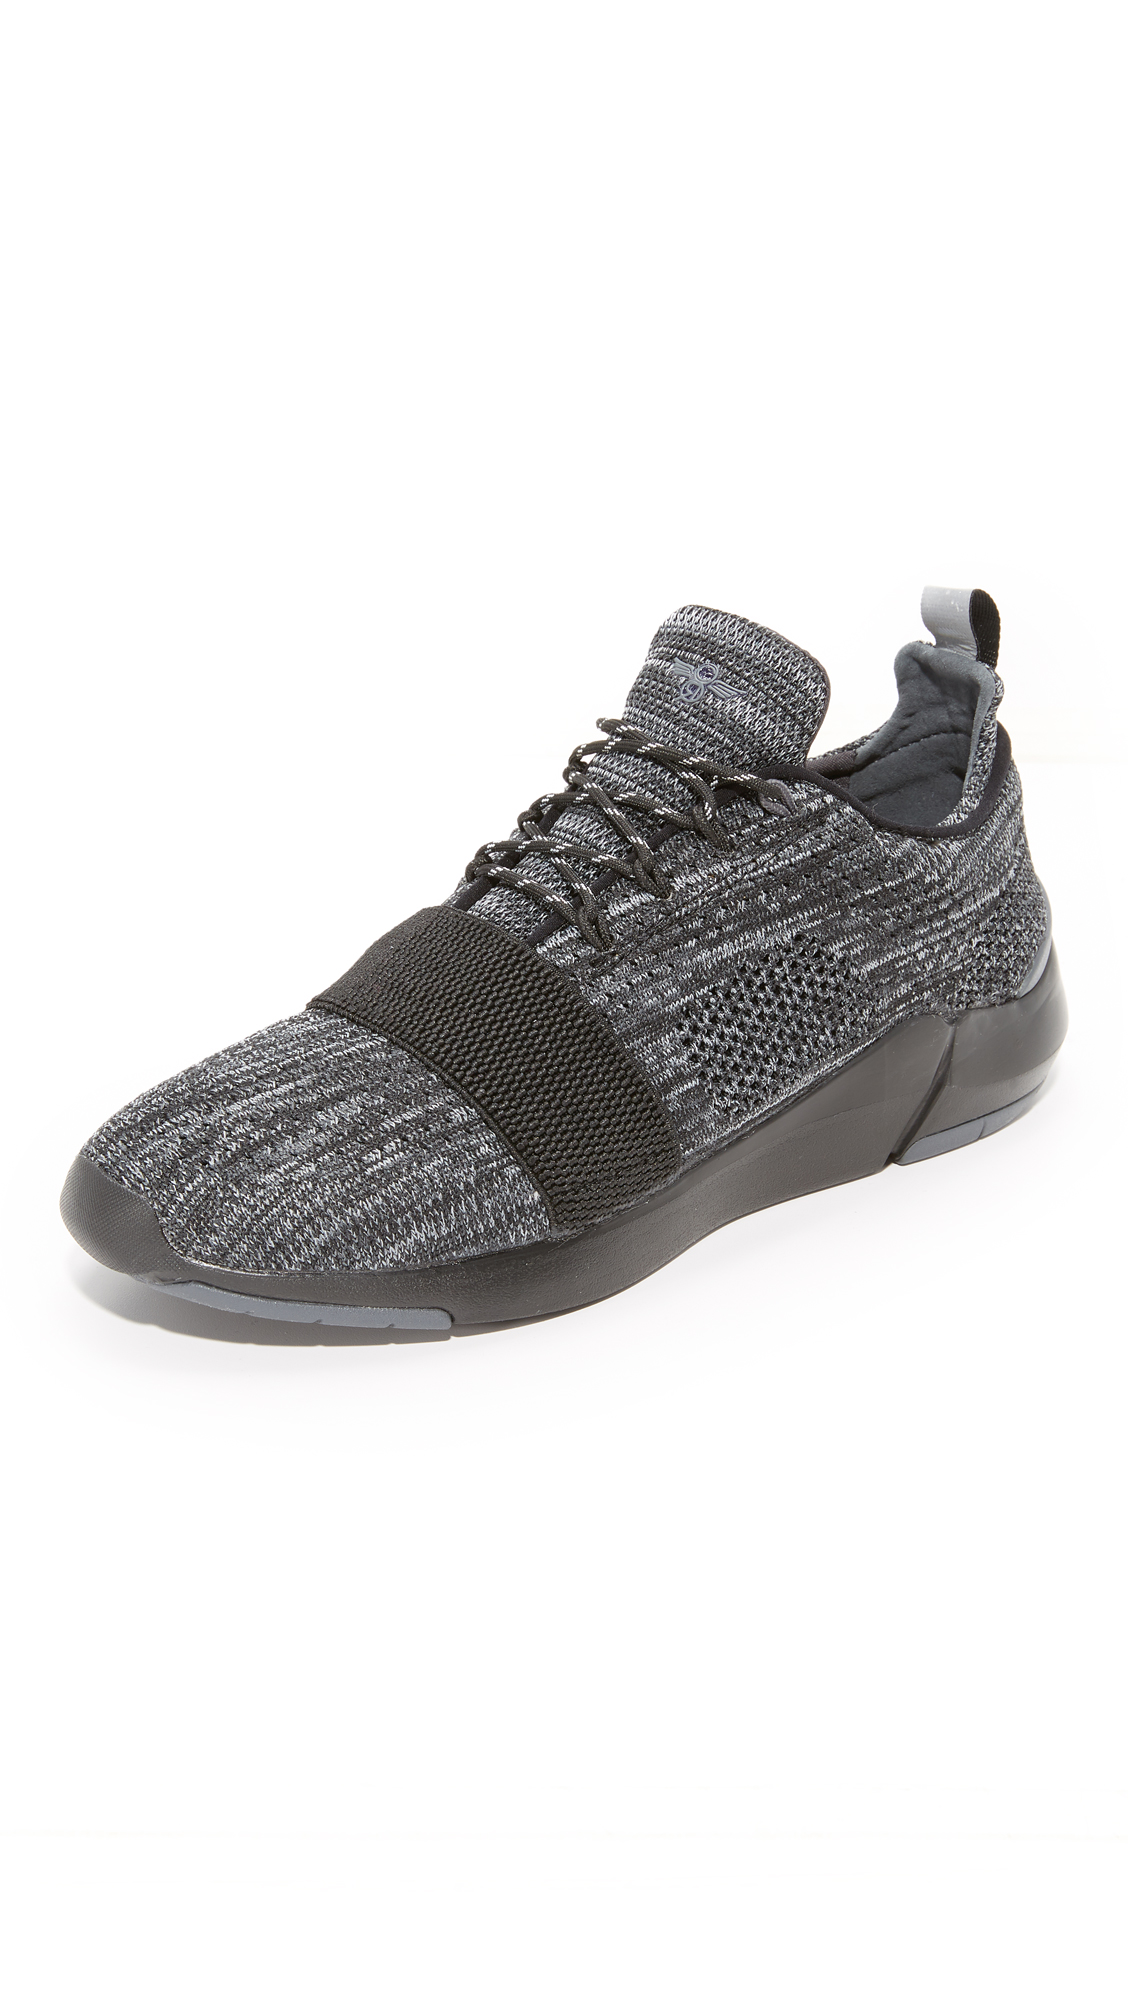 CREATIVE RECREATION MEN'S CERONI CASUAL SNEAKERS FROM FINISH LINE